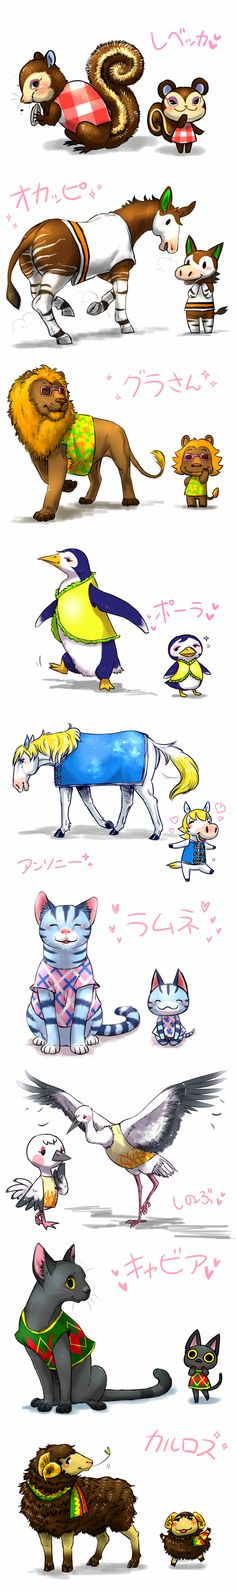 Real Animal Crossing animals. This is so cute! ^-^